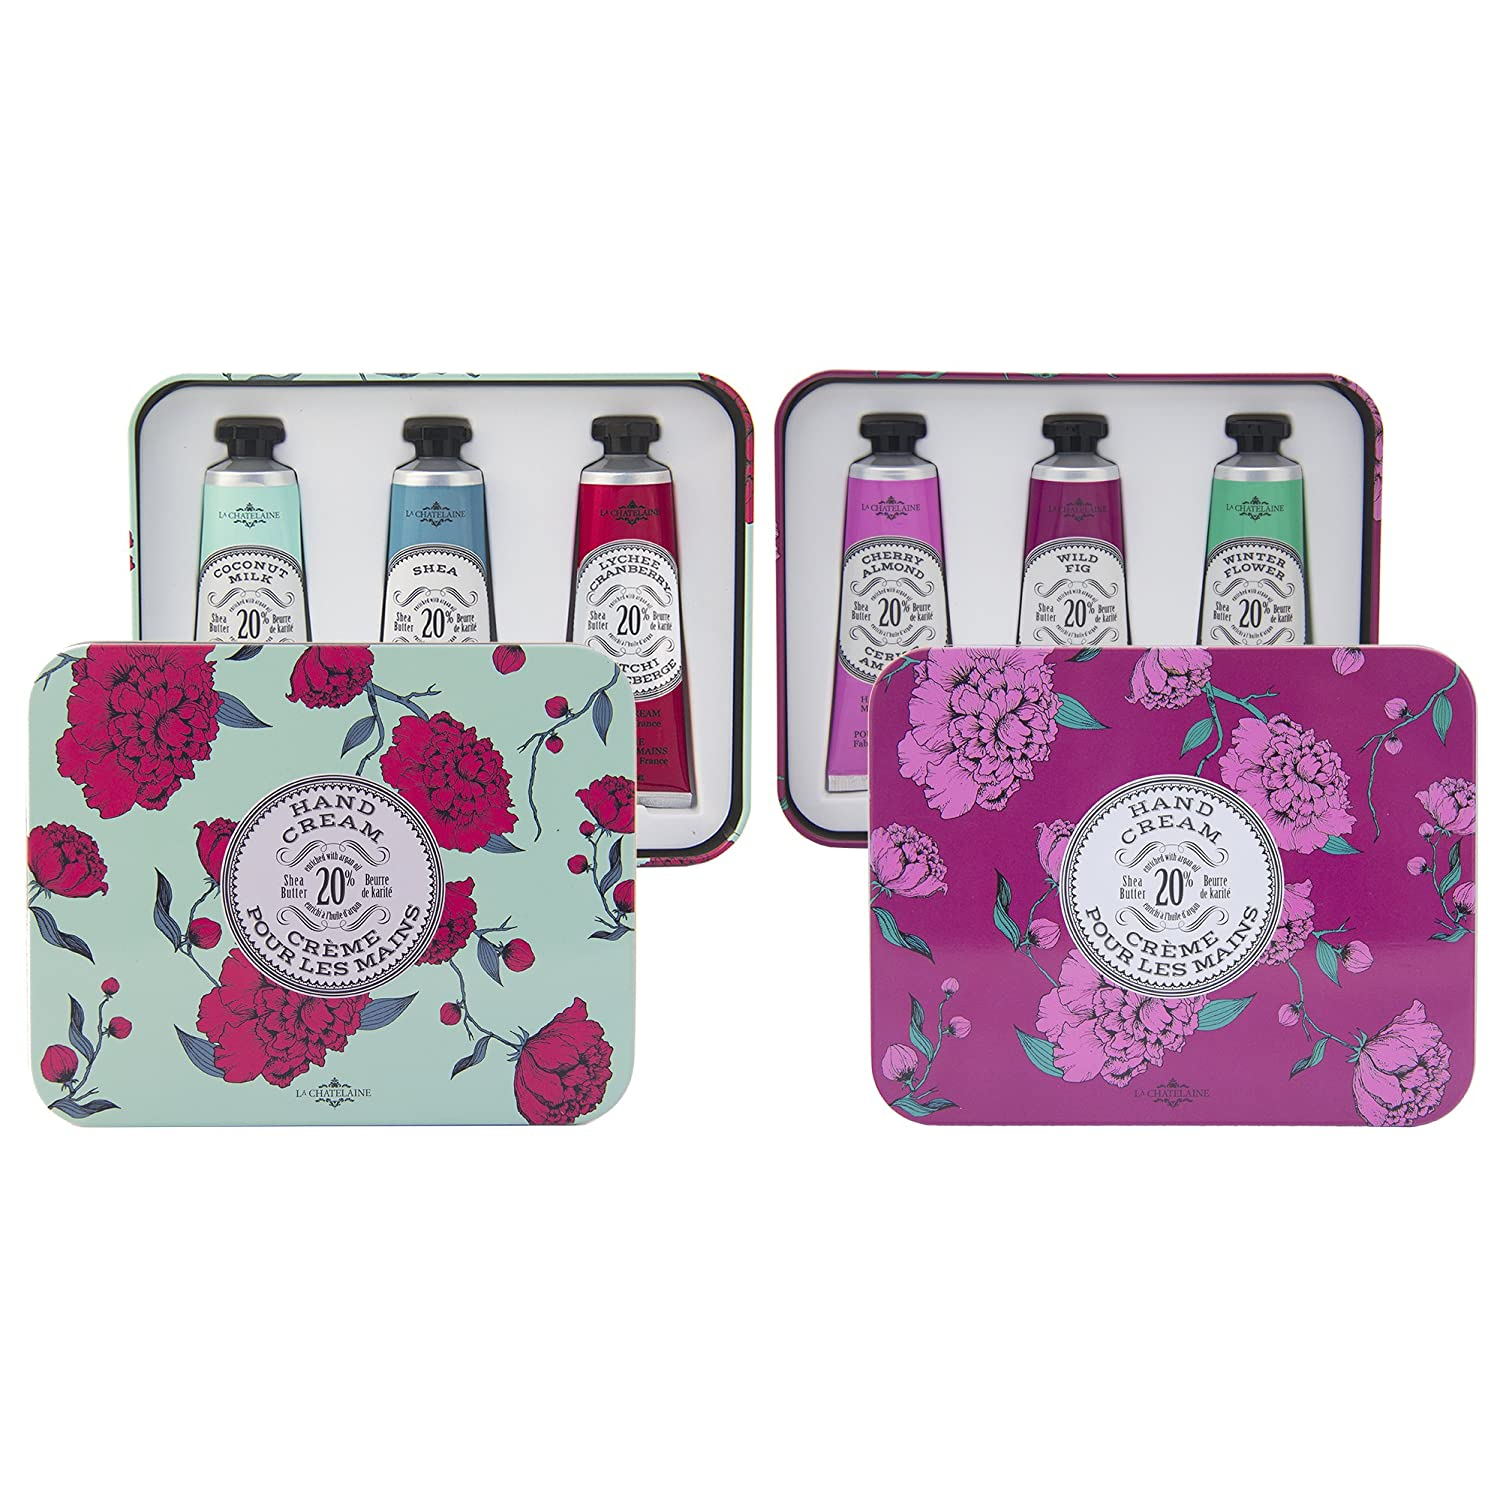 La Chatelaine 20% Shea Butter Hand Cream Gift Sets, Pack of 2 Tins, Aqua & Eggplant, Nourishing, Extra-Rich, Beauty Gifts, Made in France, Travel Size Hand Lotion 6 x 1 fl oz/ 30ml Ton Savon